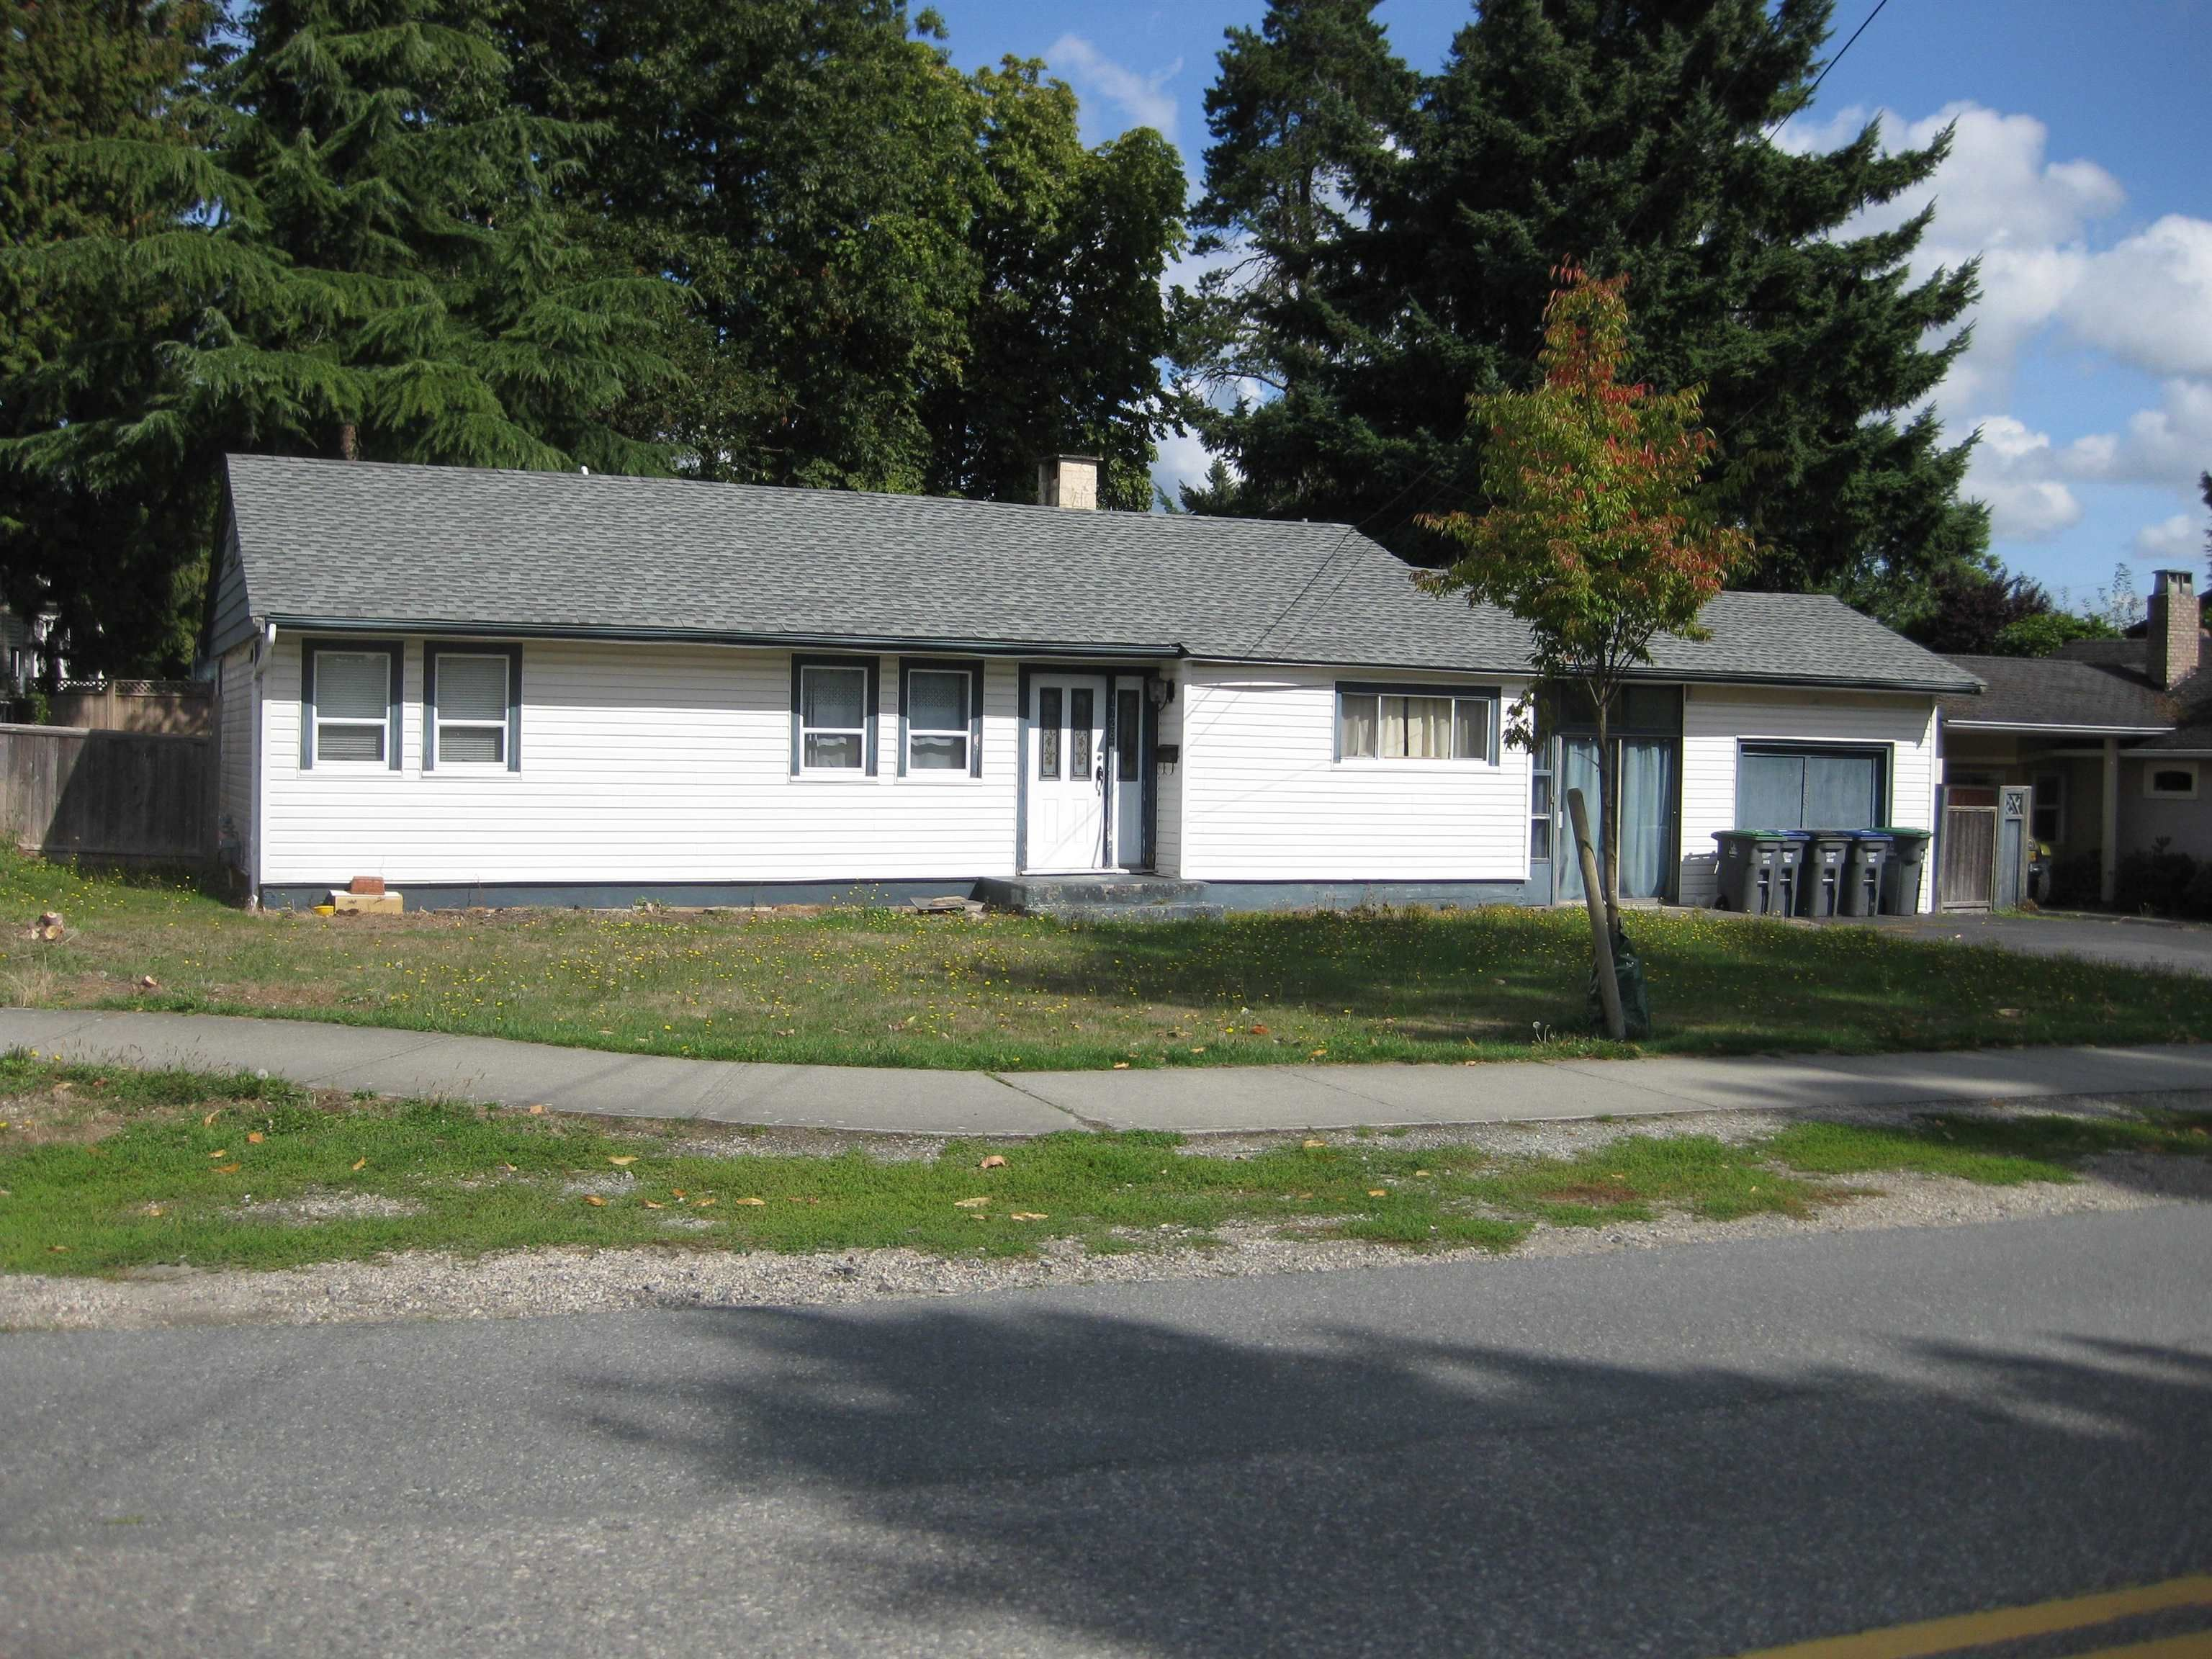 Main Photo: 17287 58 Avenue in Surrey: Cloverdale BC House for sale (Cloverdale)  : MLS®# R2618367